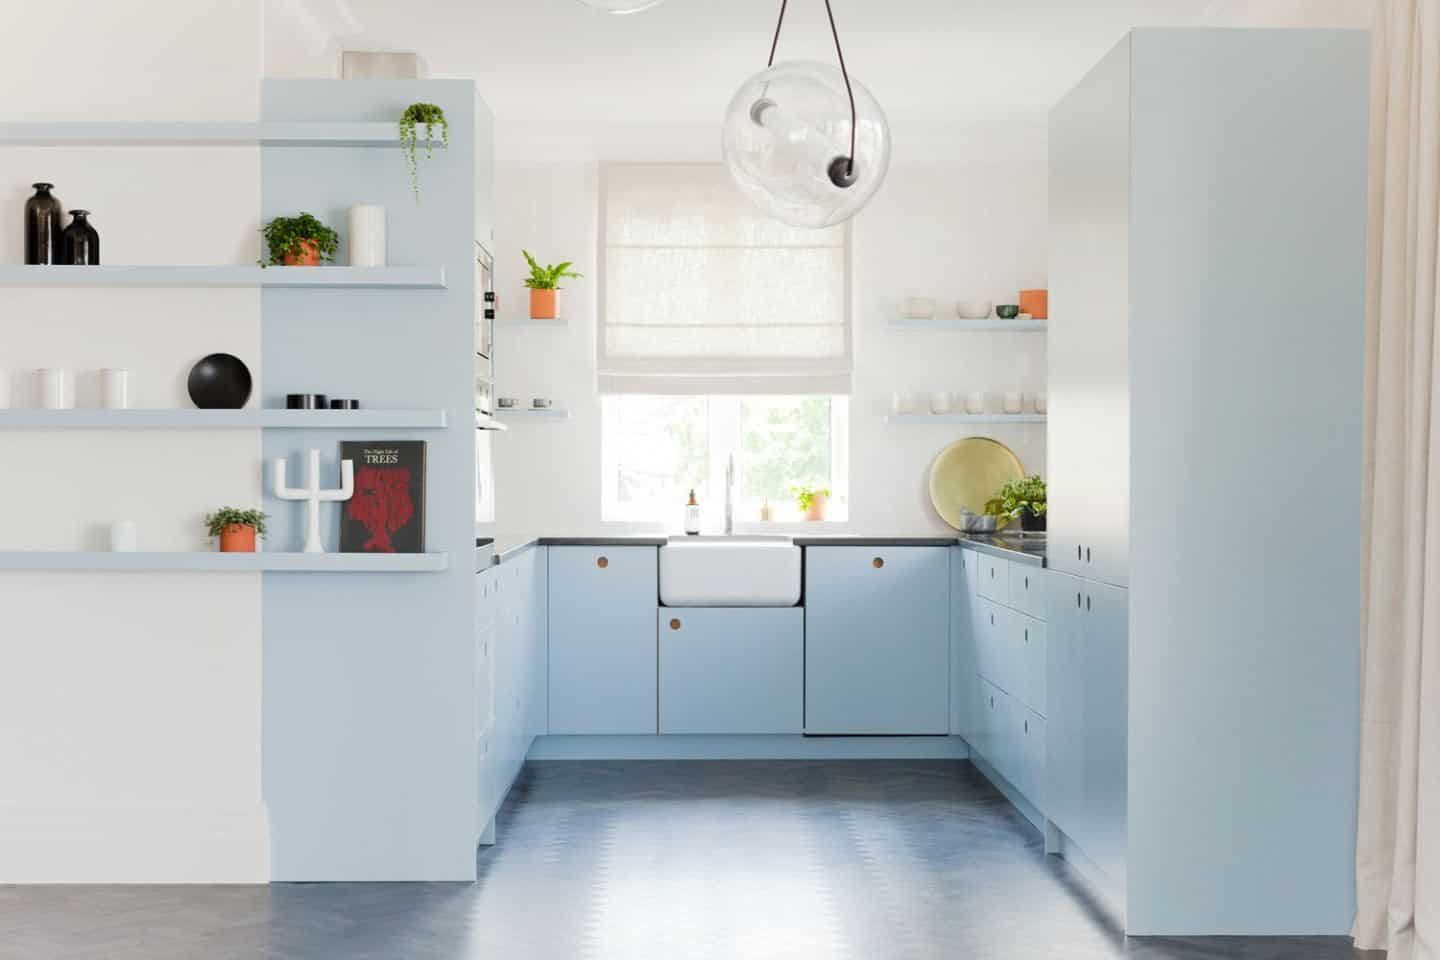 Trend : Colourful Kitchen Cabinetry - The Design Sheppard